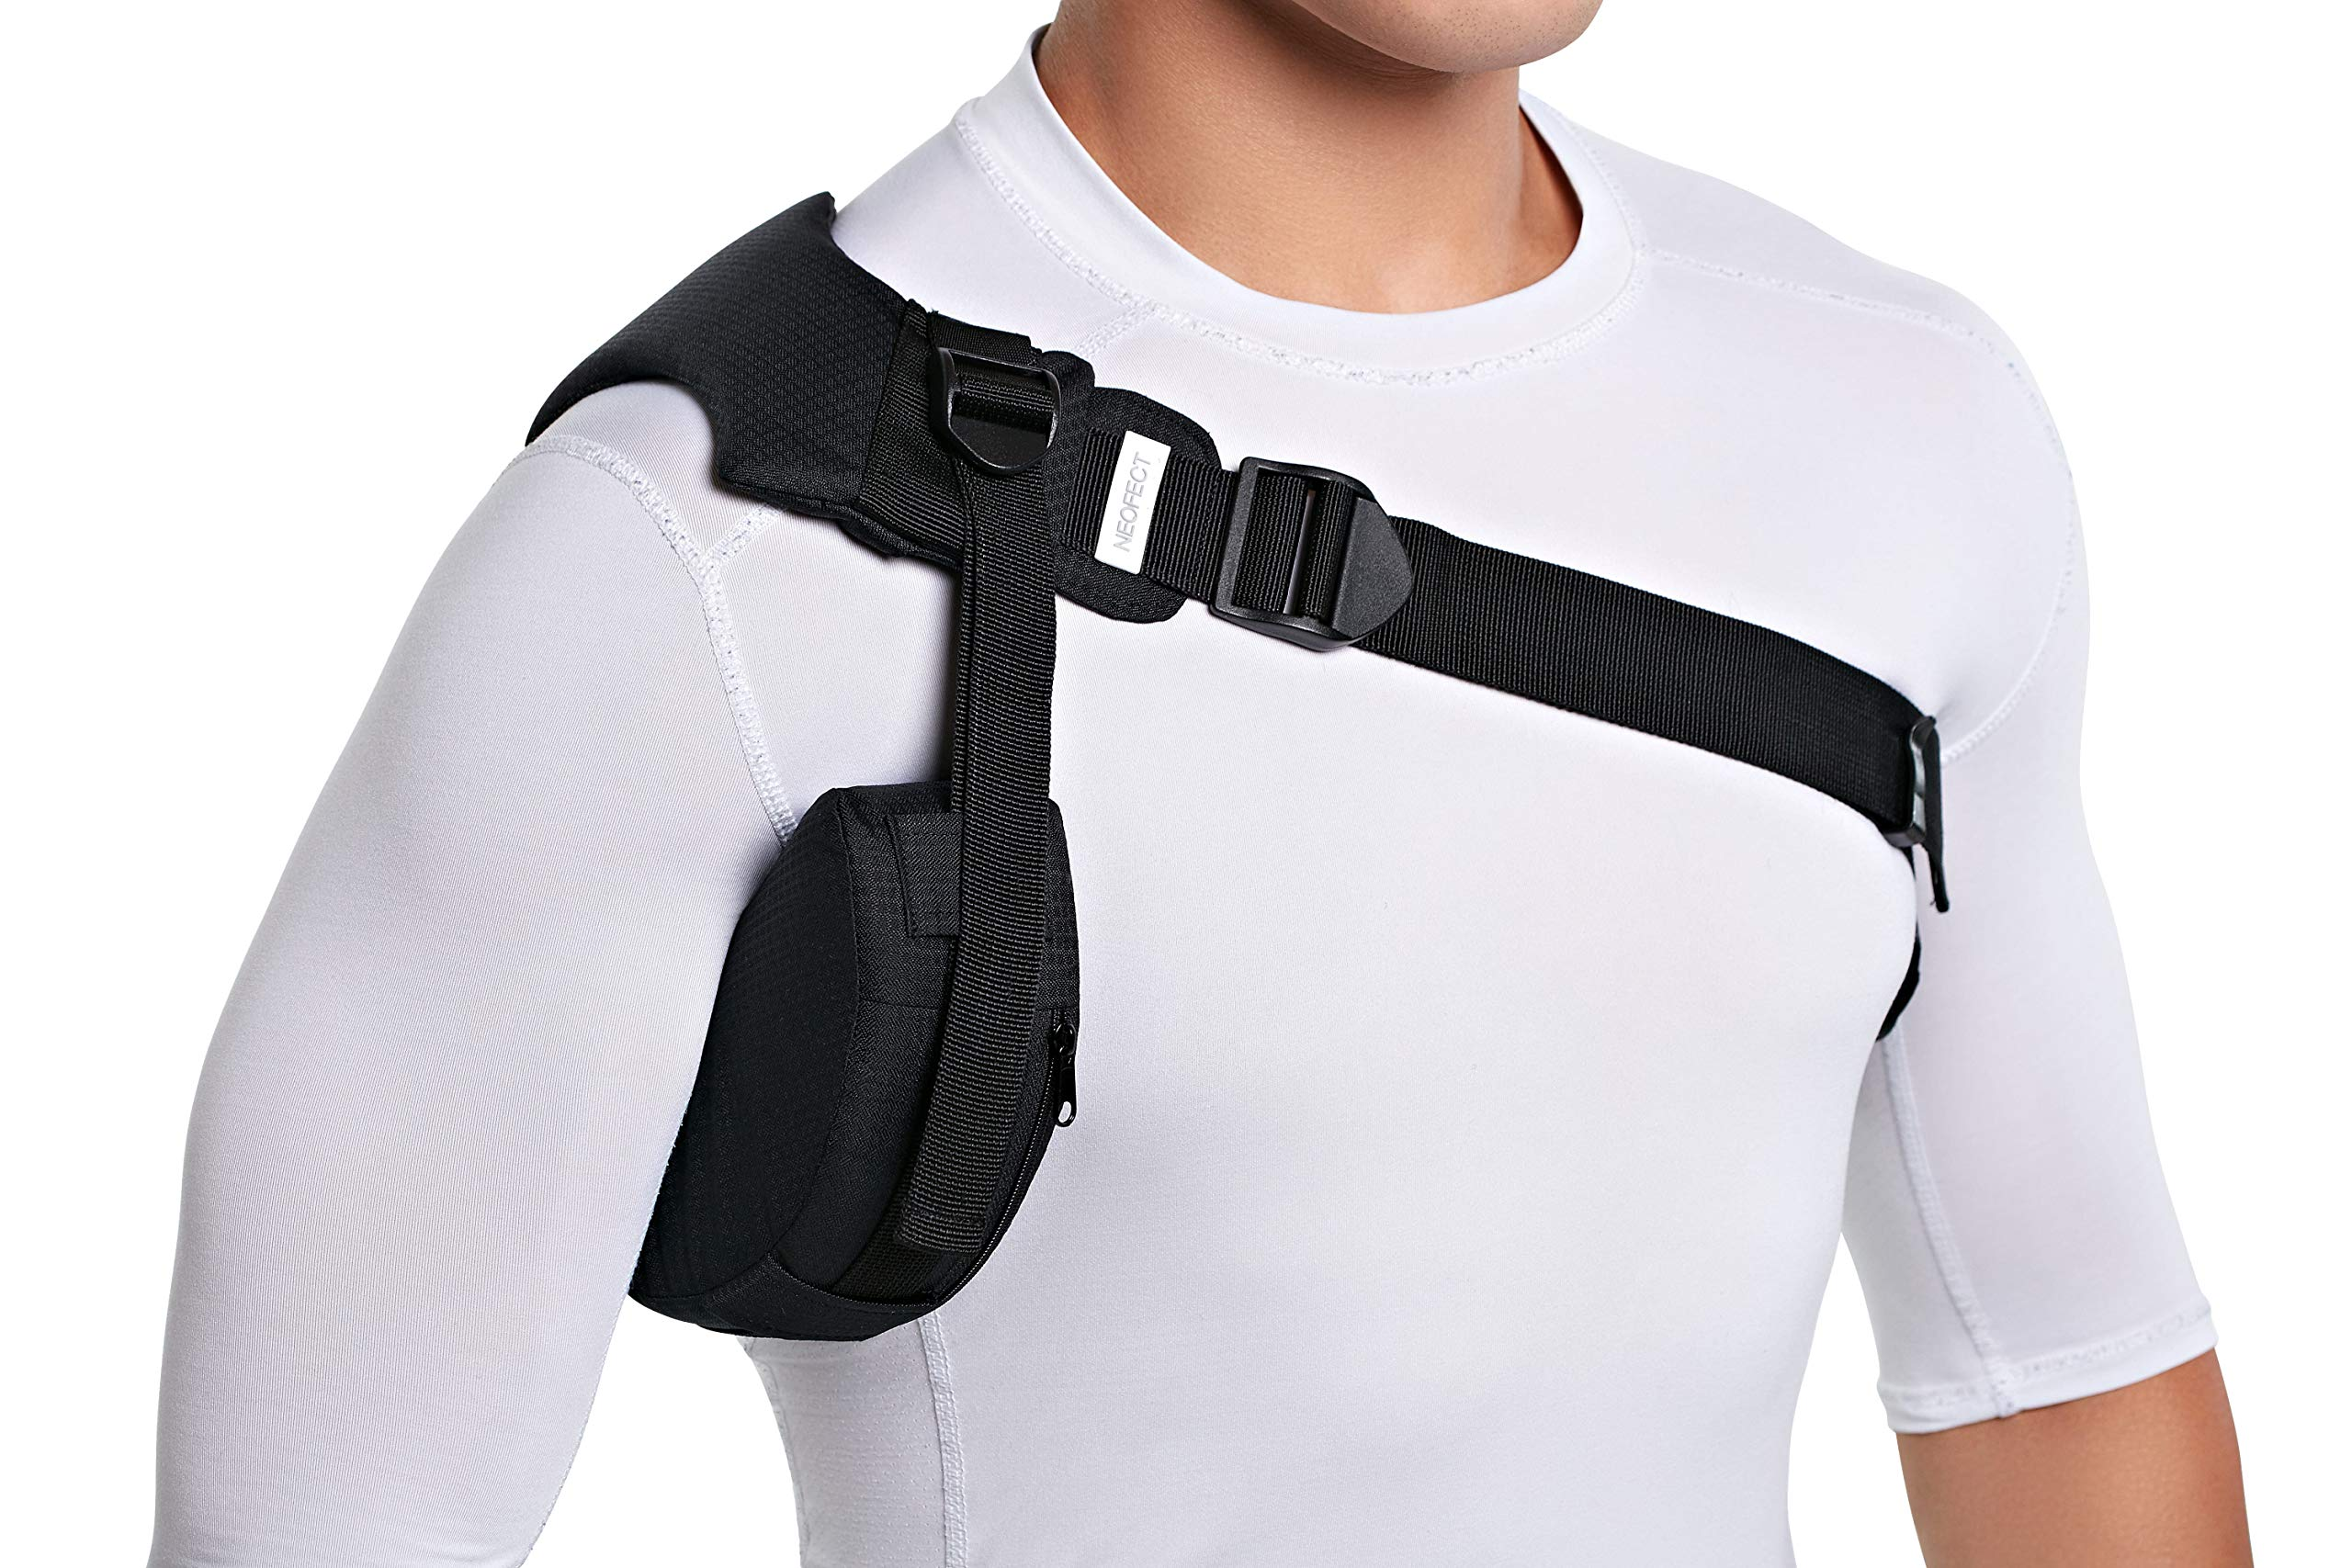 NEOFECT Shoulder Brace - Prevents Subluxation & Dislocation for hemiplegic Shoulder, Rotator Cuff, AC Joint, Labrum Tears (Right)